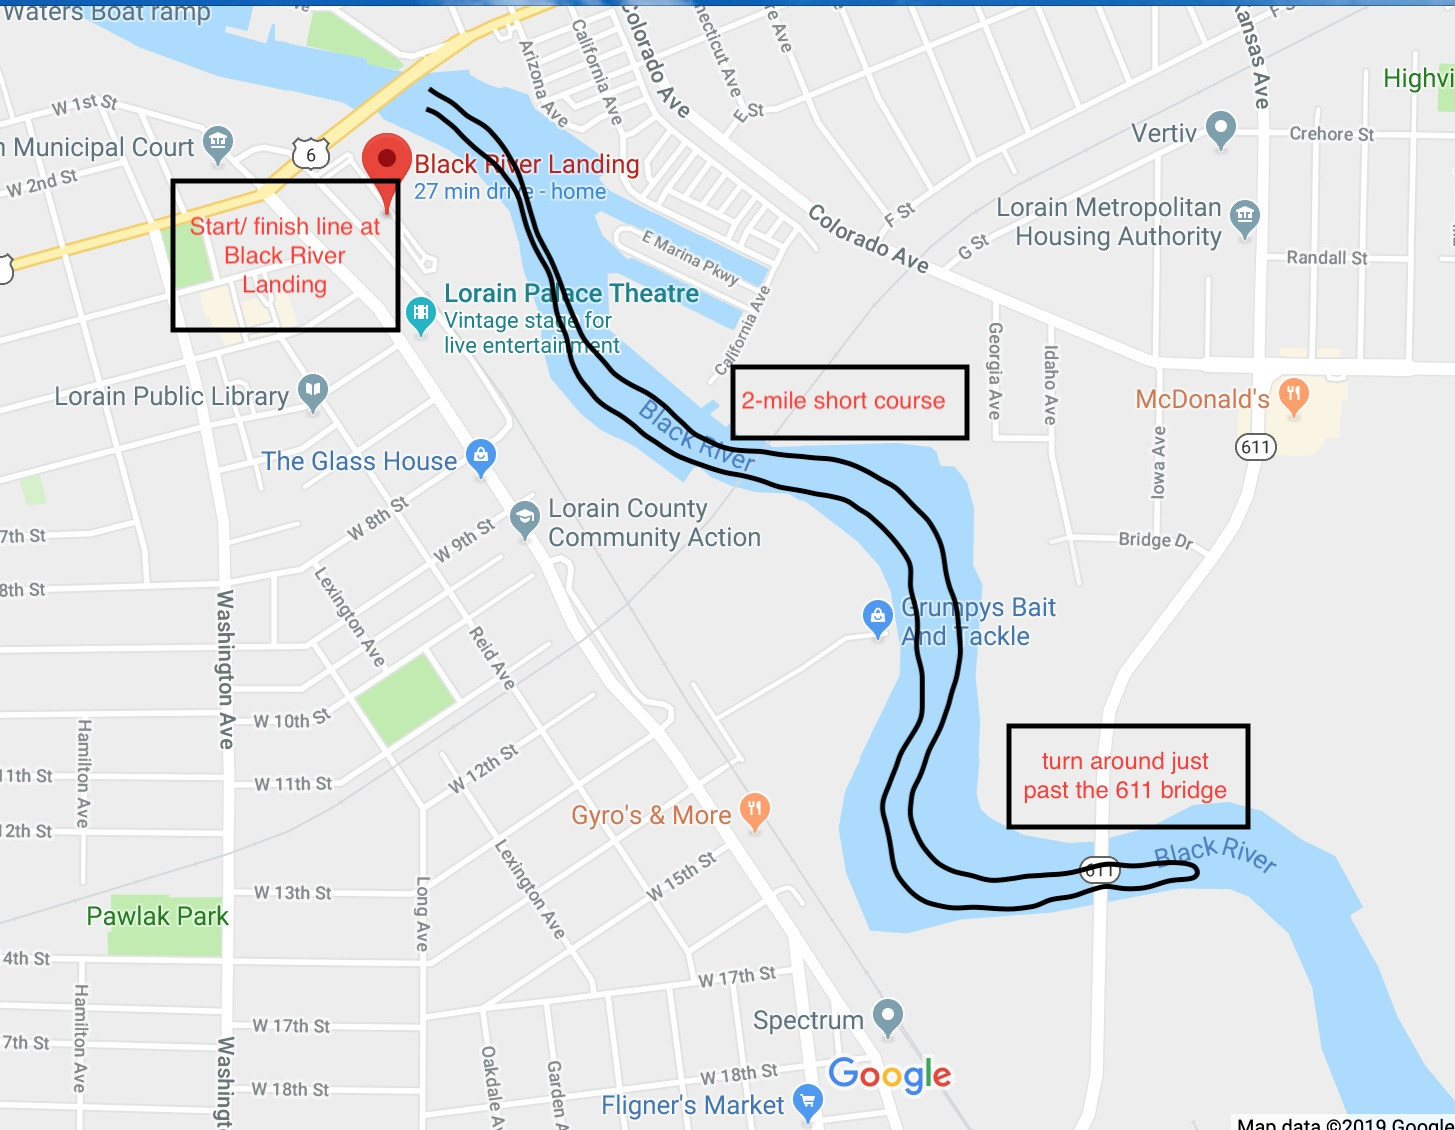 2-mile, short course, recreational race from Black River Landing, upriver to the Rt 611 bridge, turn around, back downriver to finish at Black River Landing.